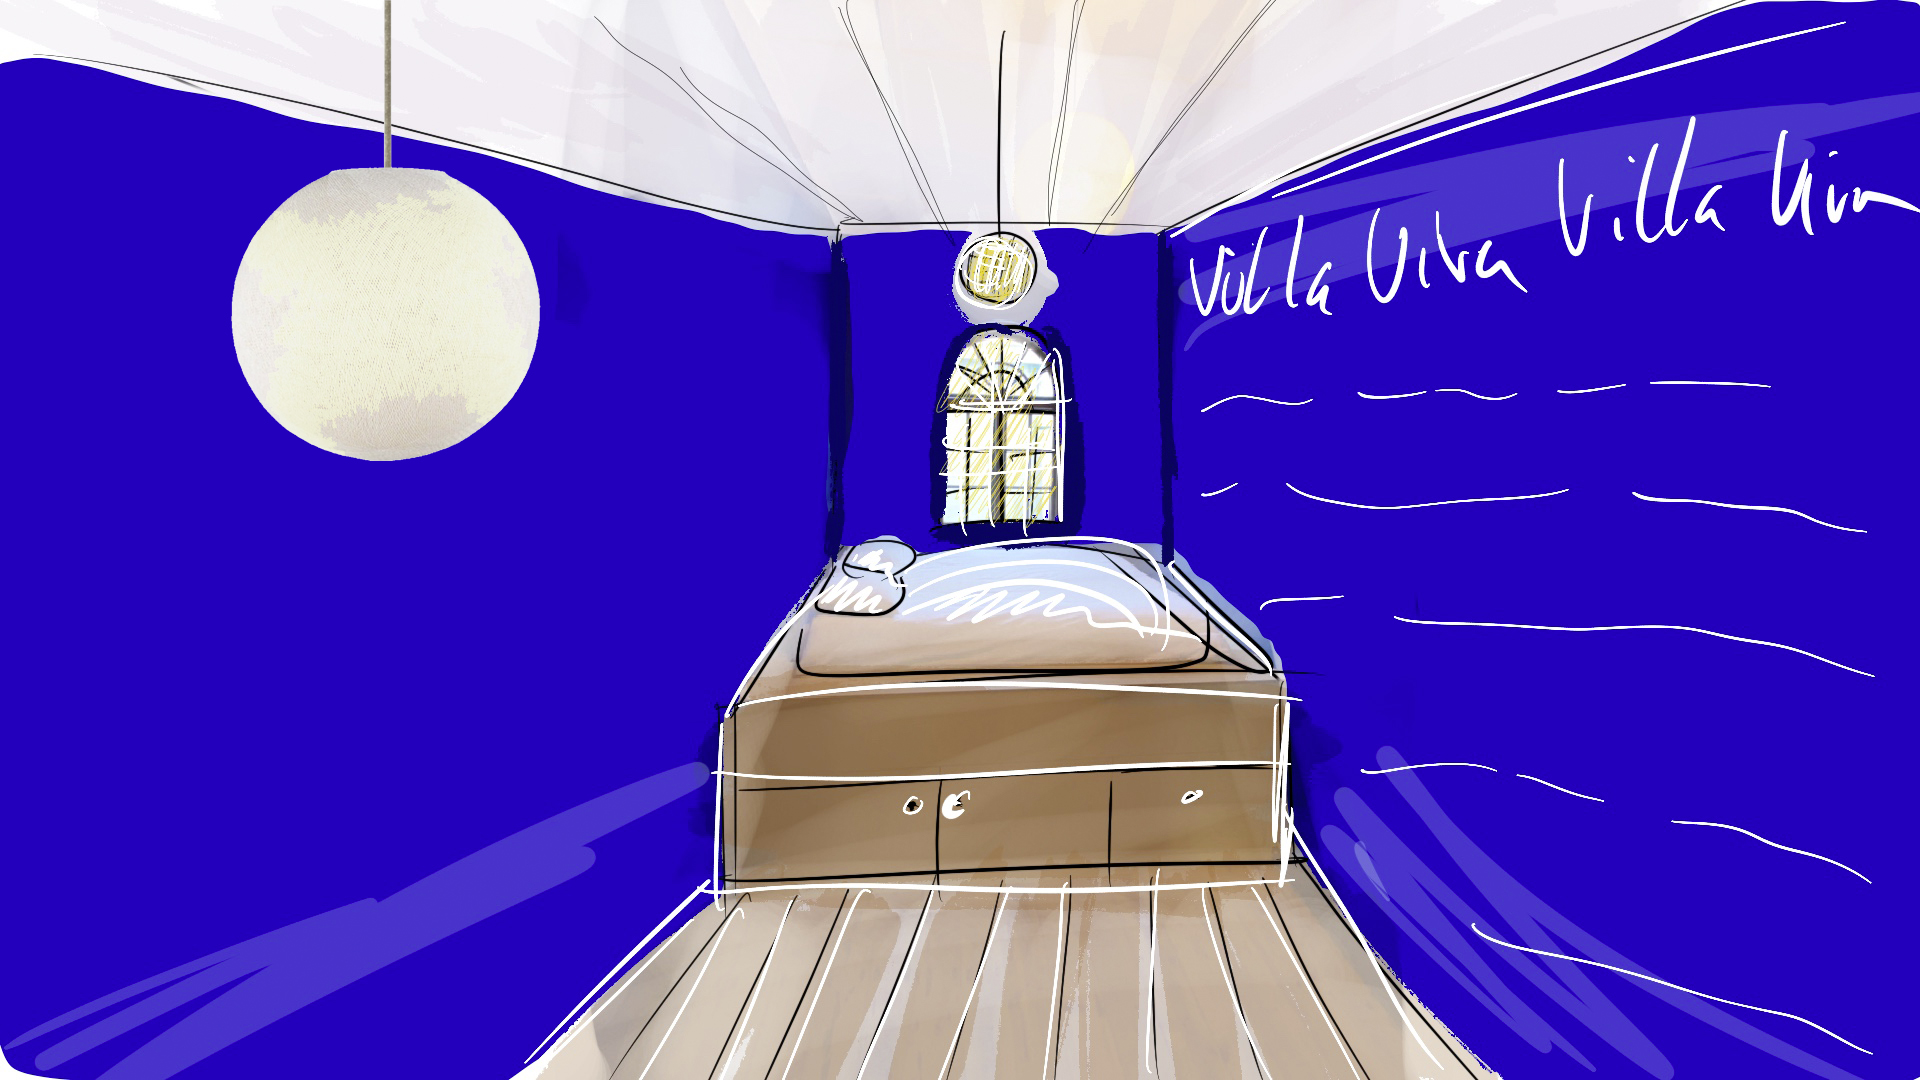 An illustration of the room type